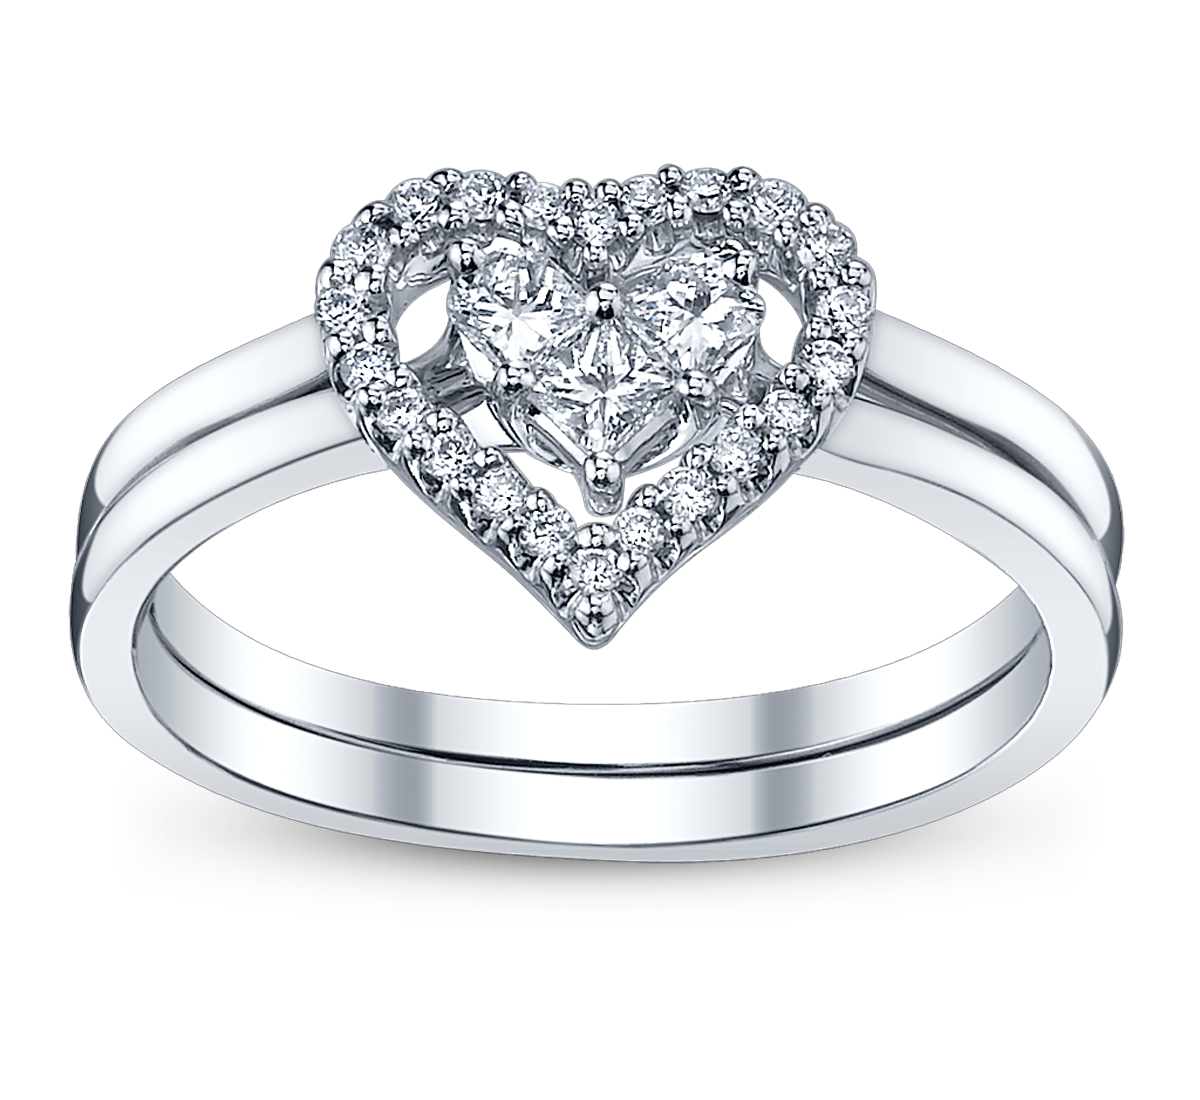 Wedding Ring PNG Clipart, Jewelry Ring PNG Images Free.